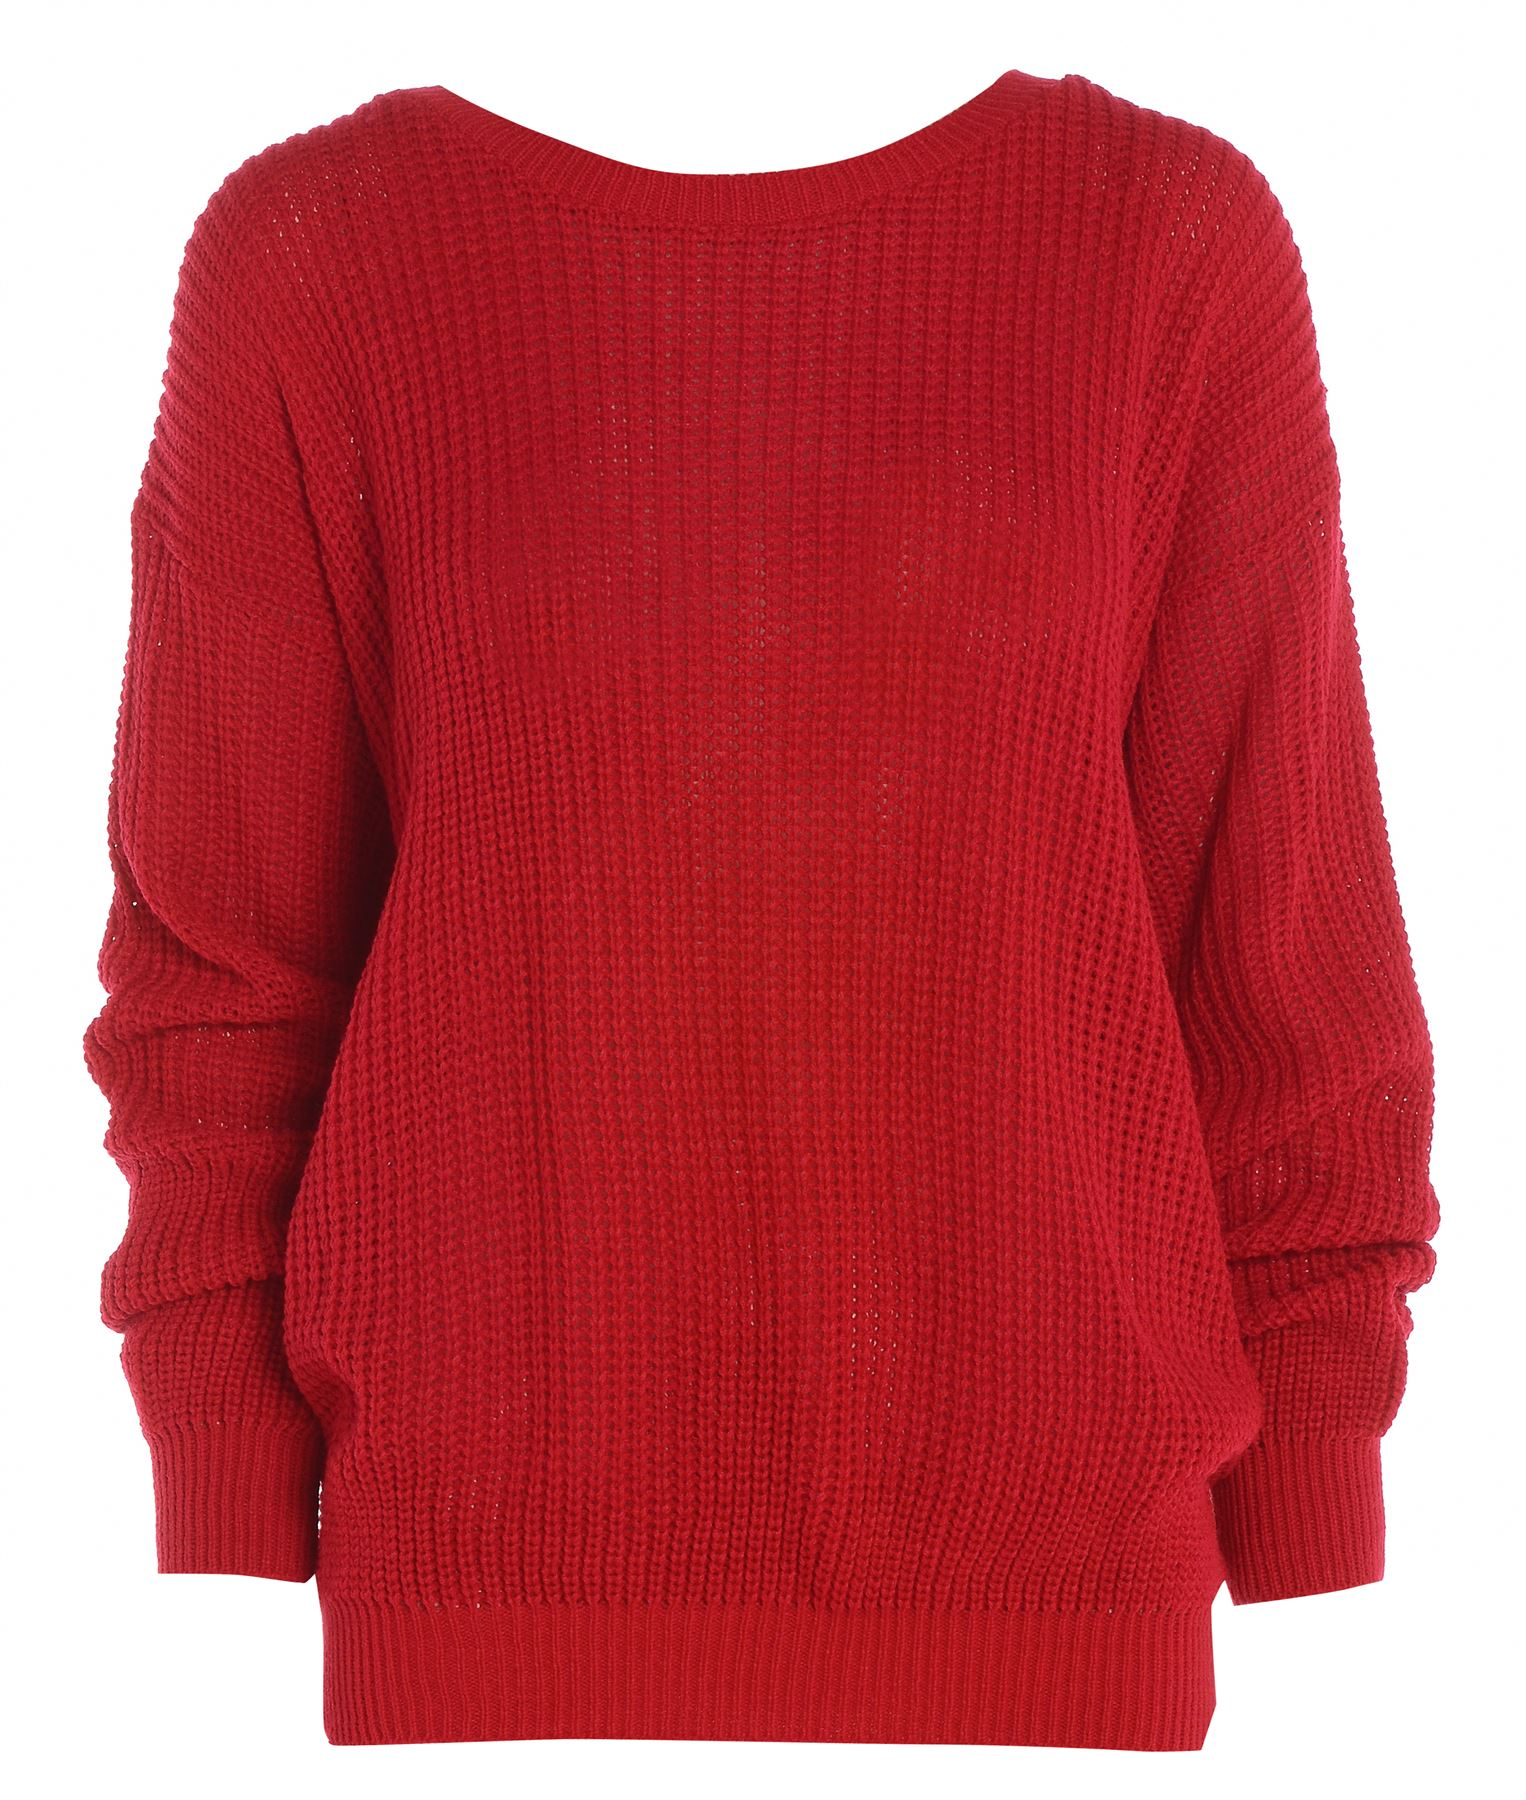 New Ladies Womens Plain Oversized Baggy Knitted Jumper Chunky ...